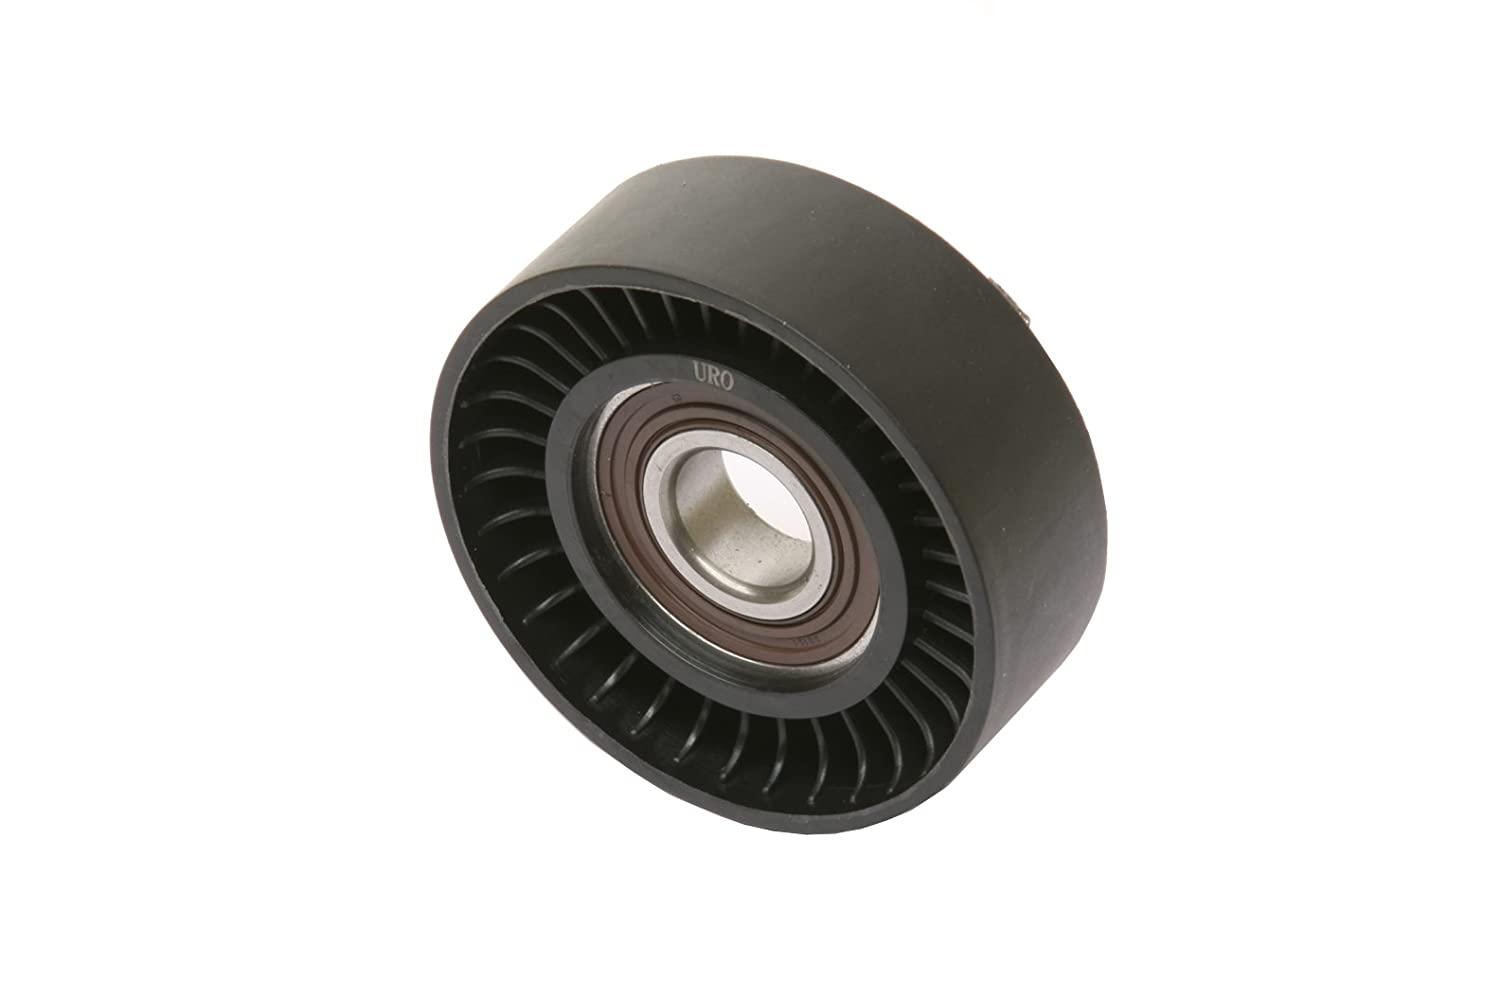 URO Parts 06A 903 315E-P Belt Tensioner Pulley Only